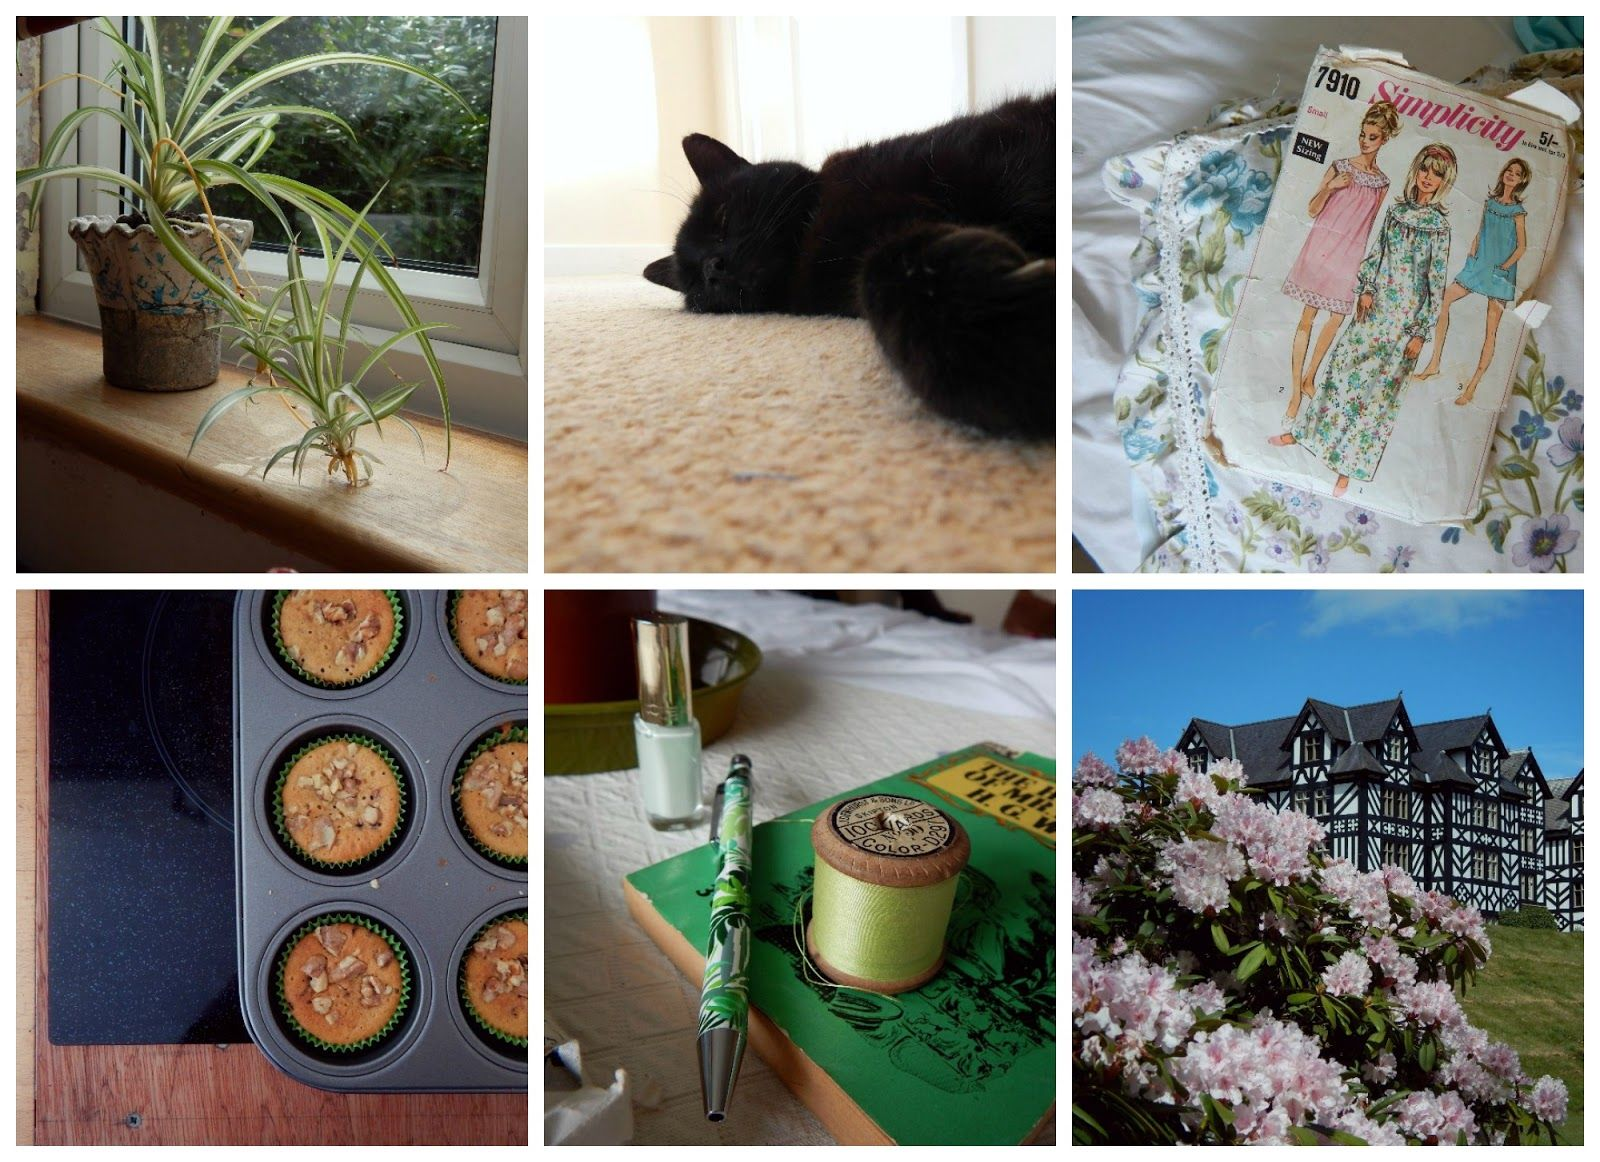 The Weekend Whim: April 2015